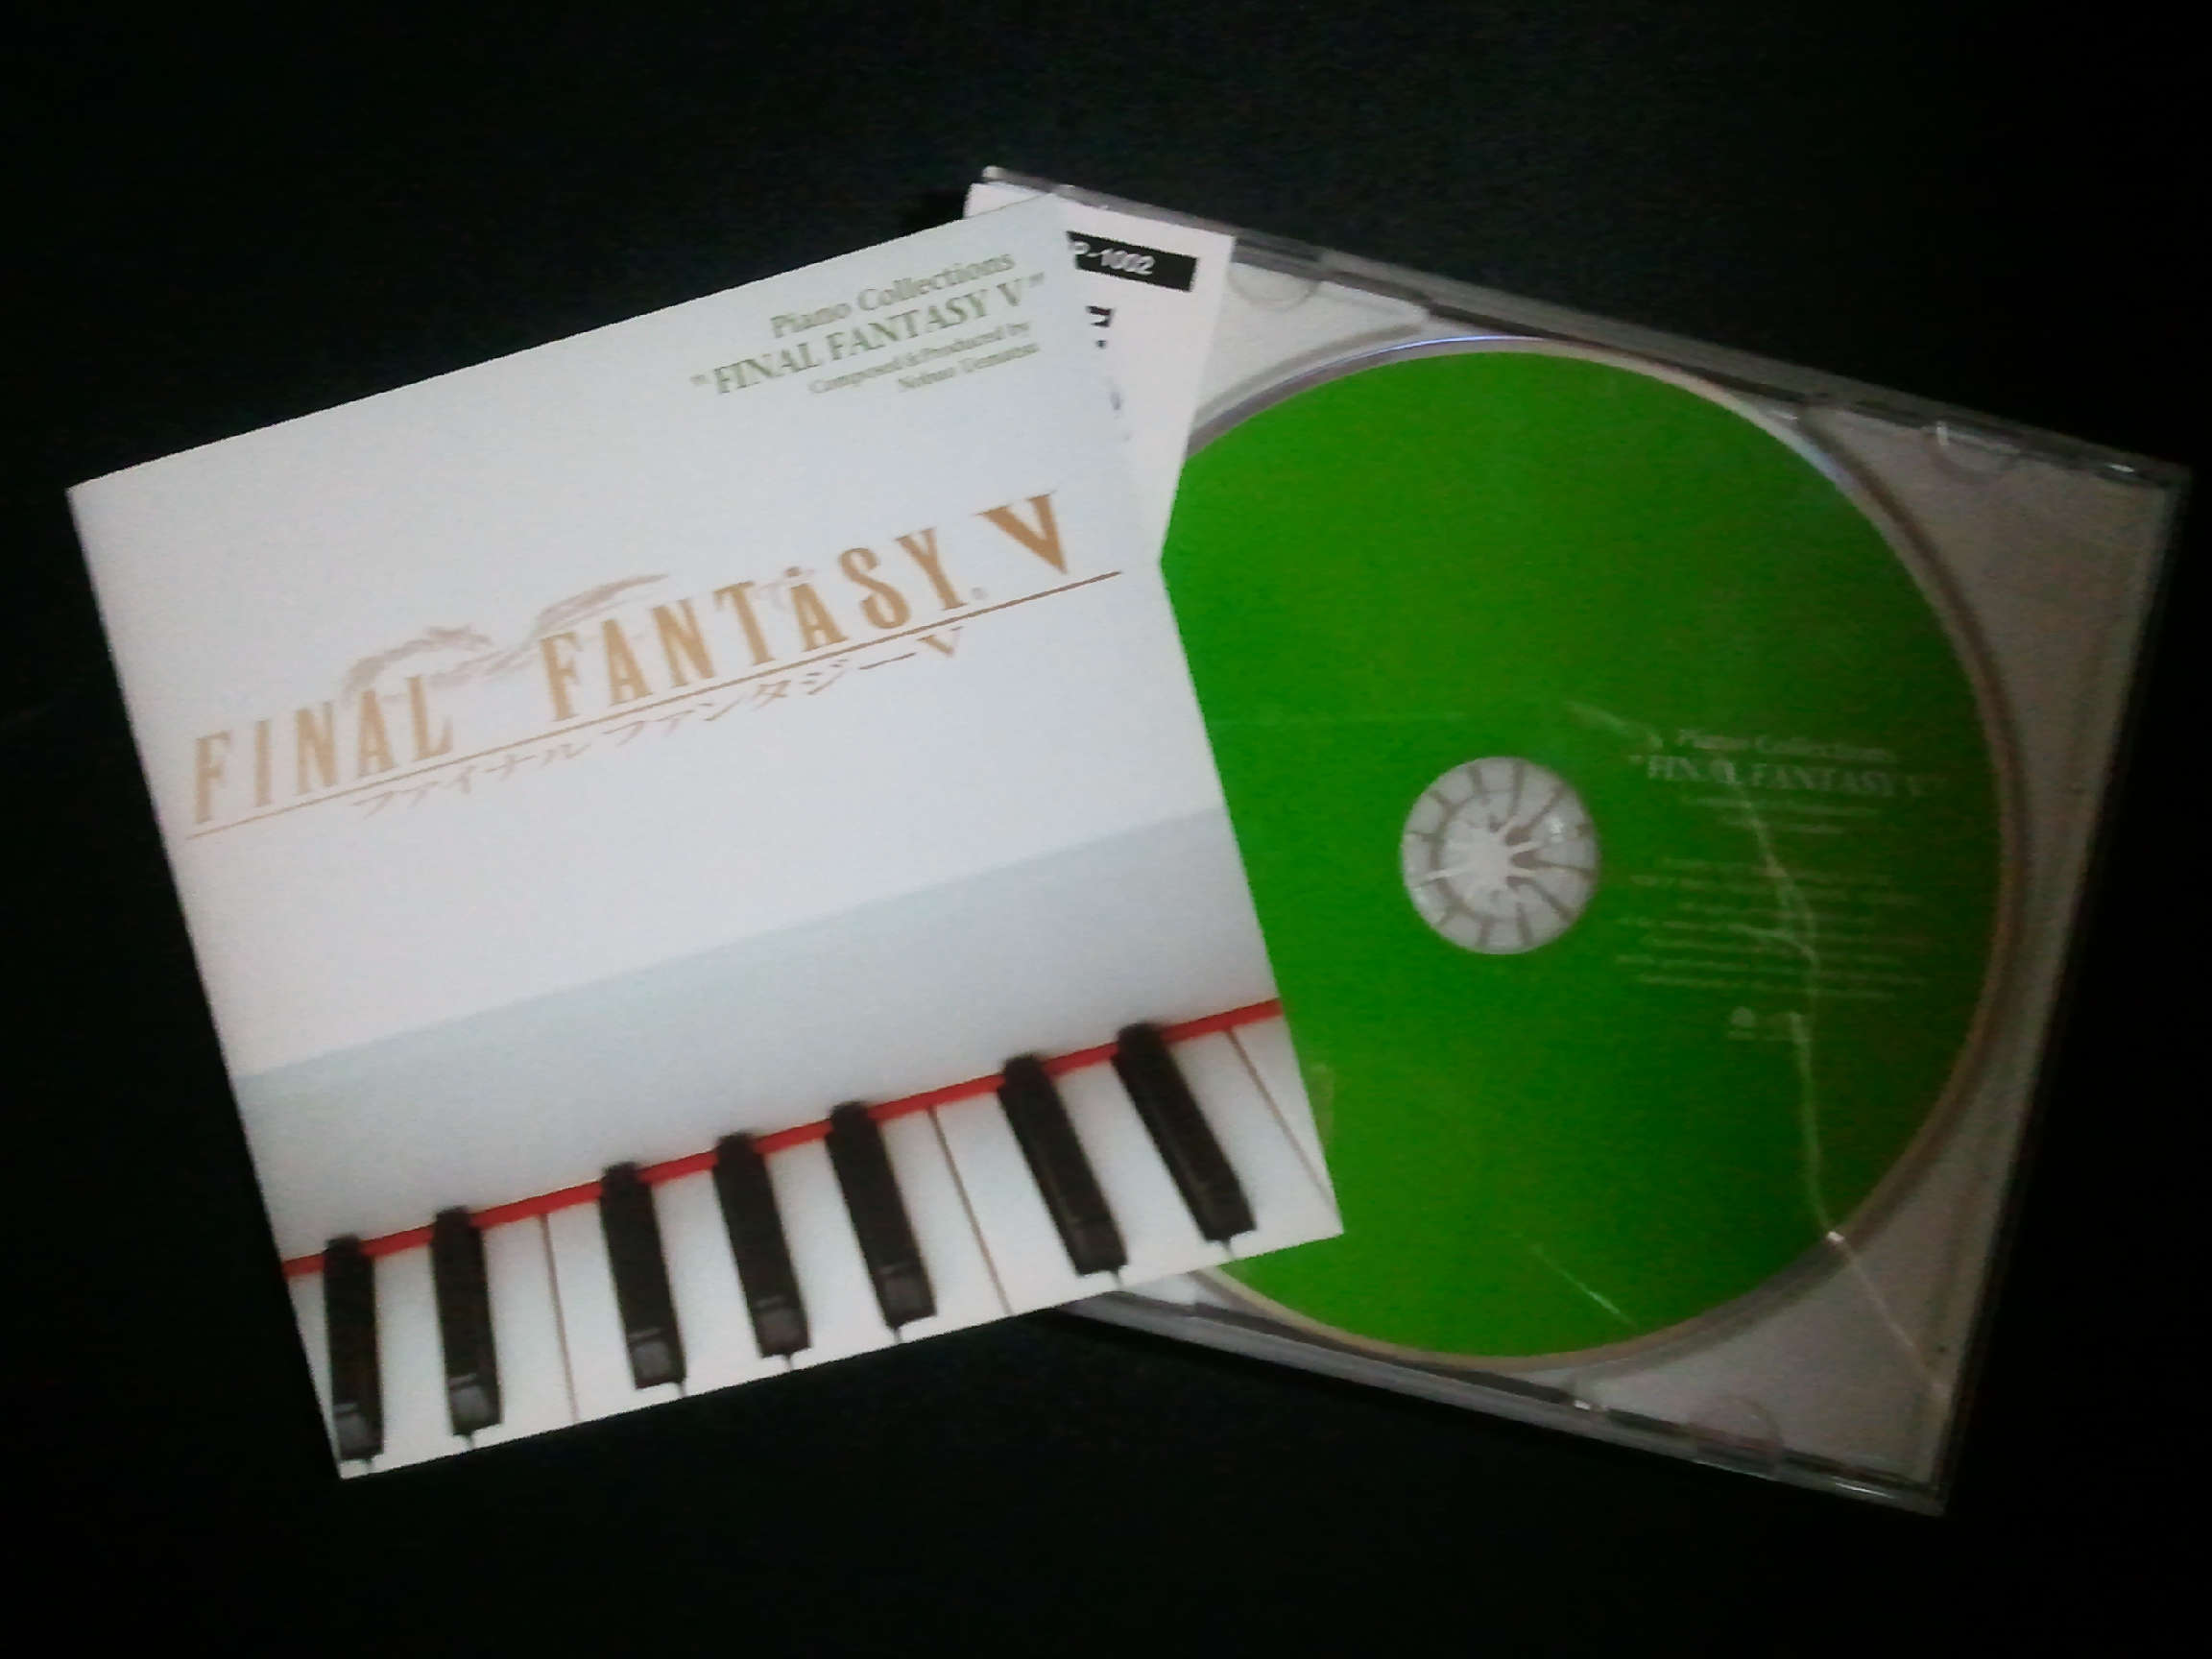 Piano Collections Final Fantasy V